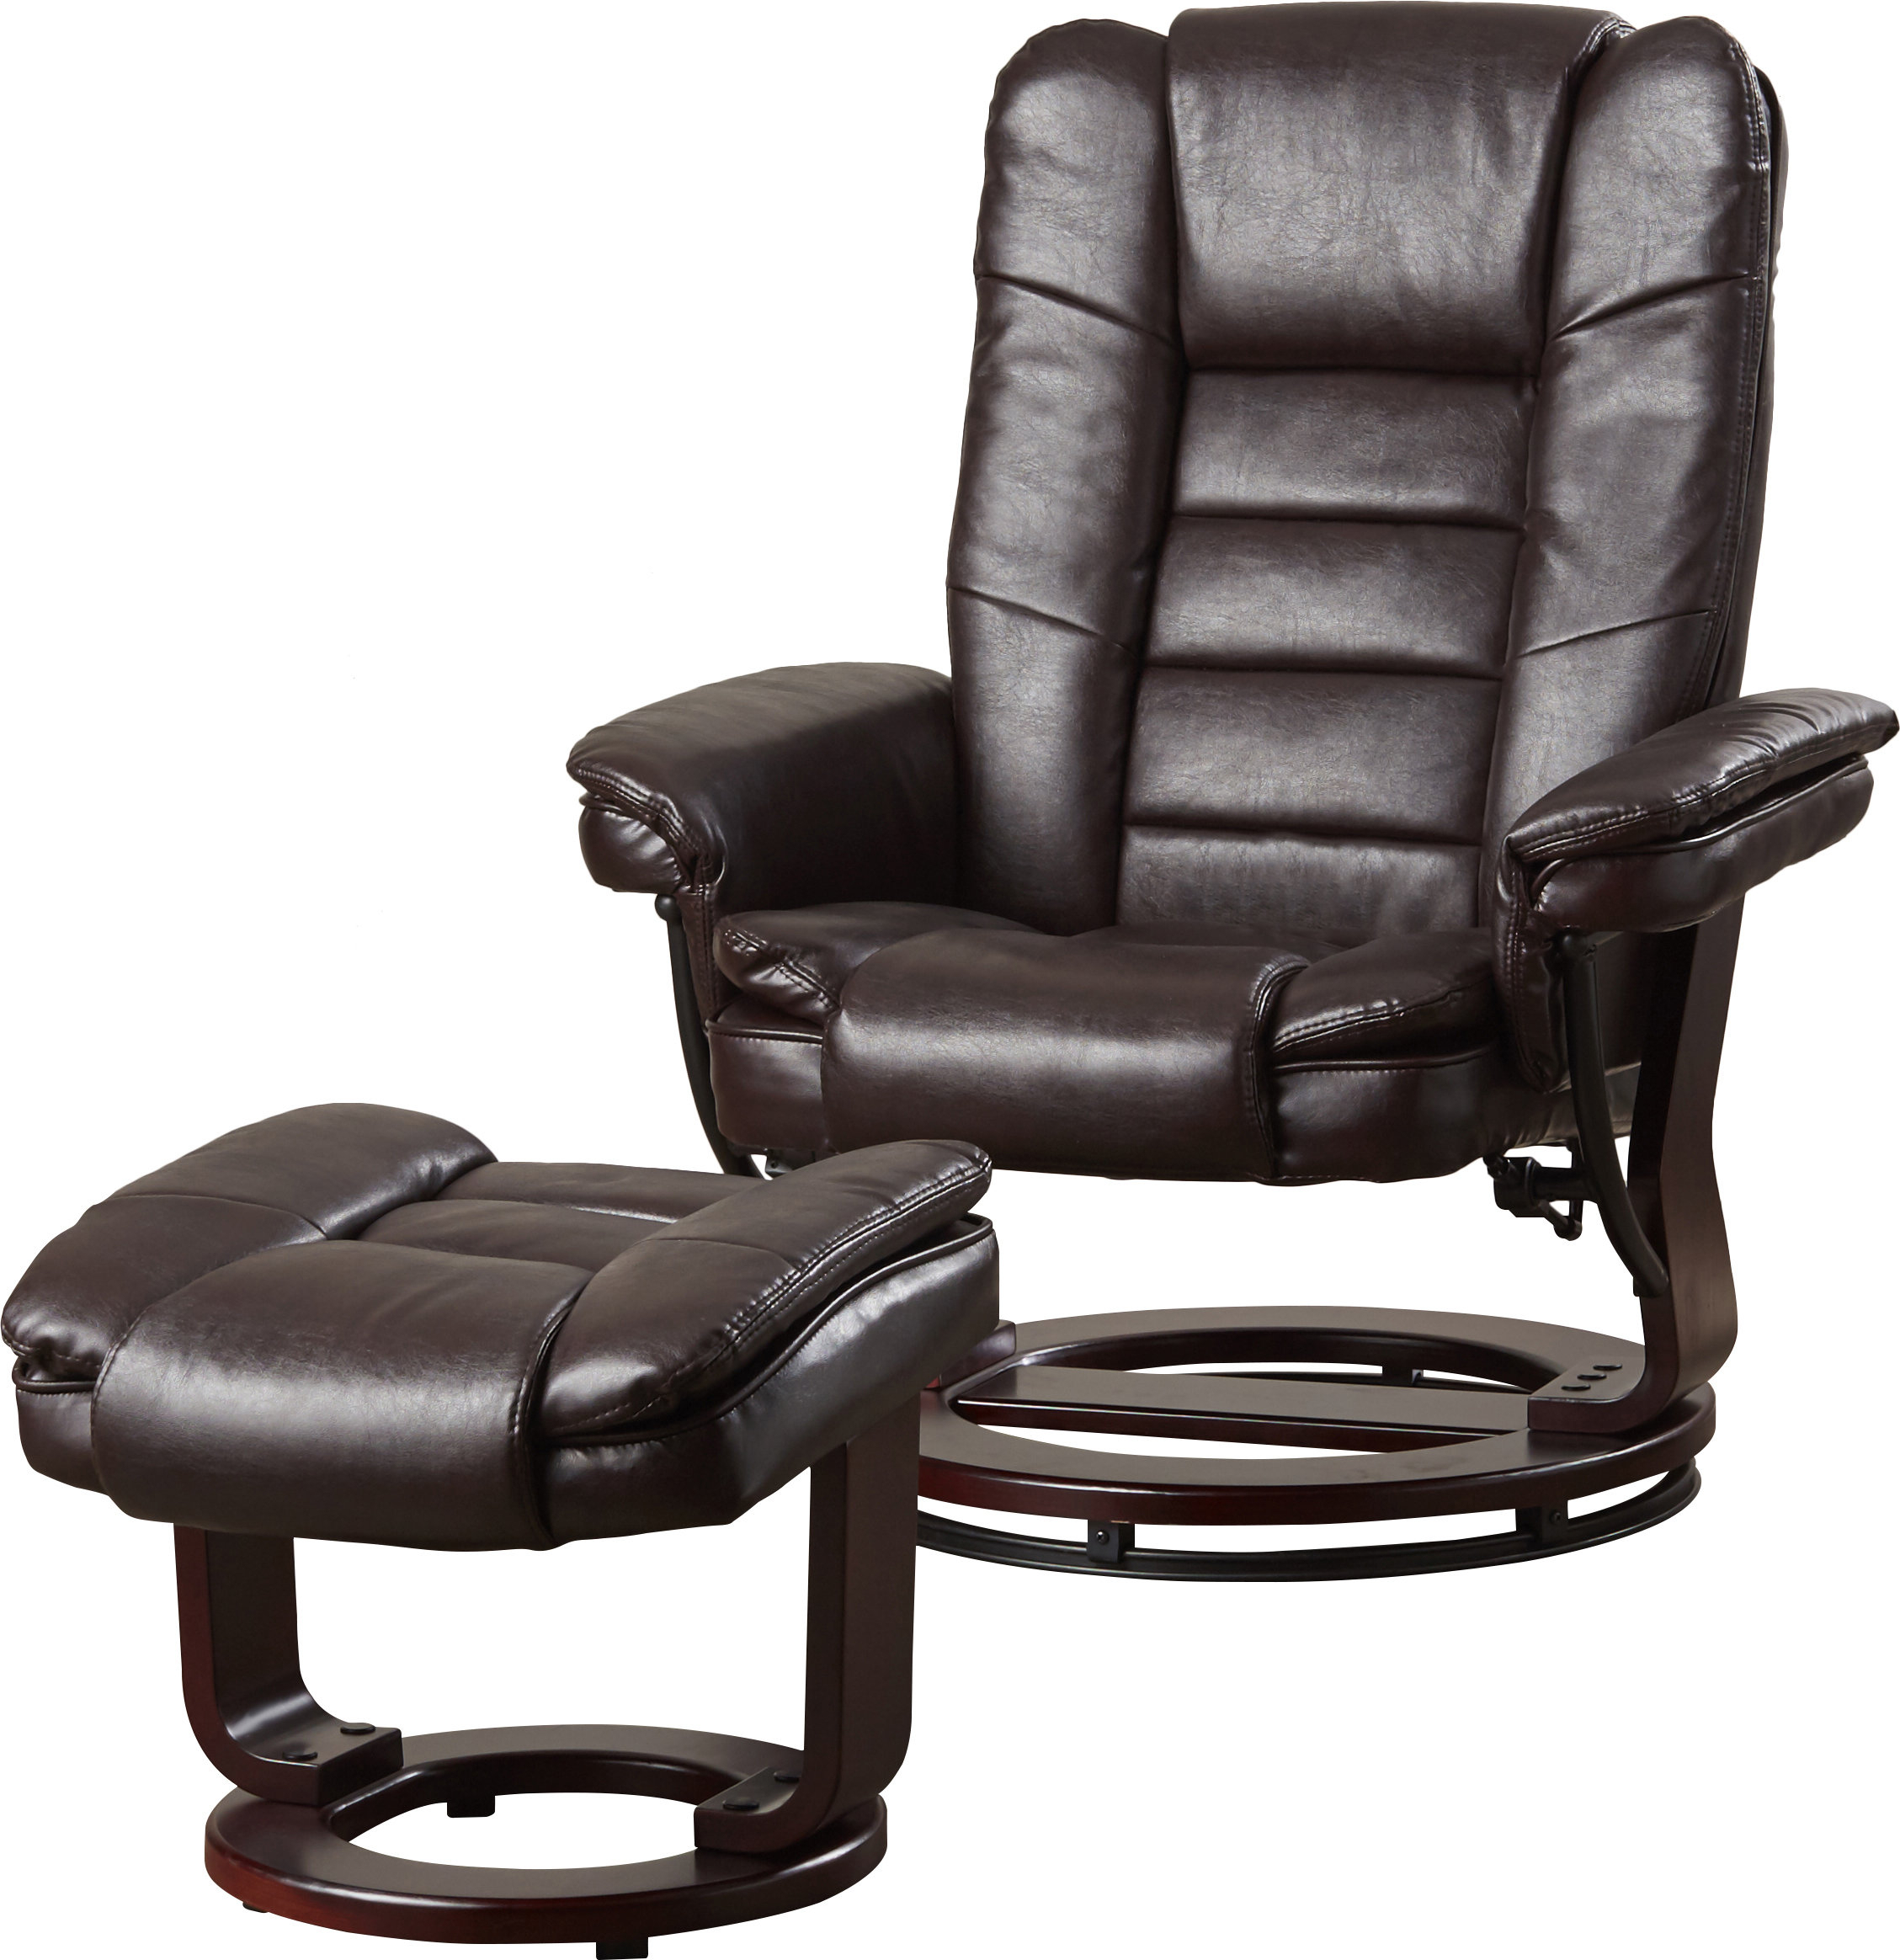 Alcott Hill Hammersdale Manual Swivel Recliner With Ottoman For Dale Iii Polyurethane Swivel Glider Recliners (Image 2 of 20)